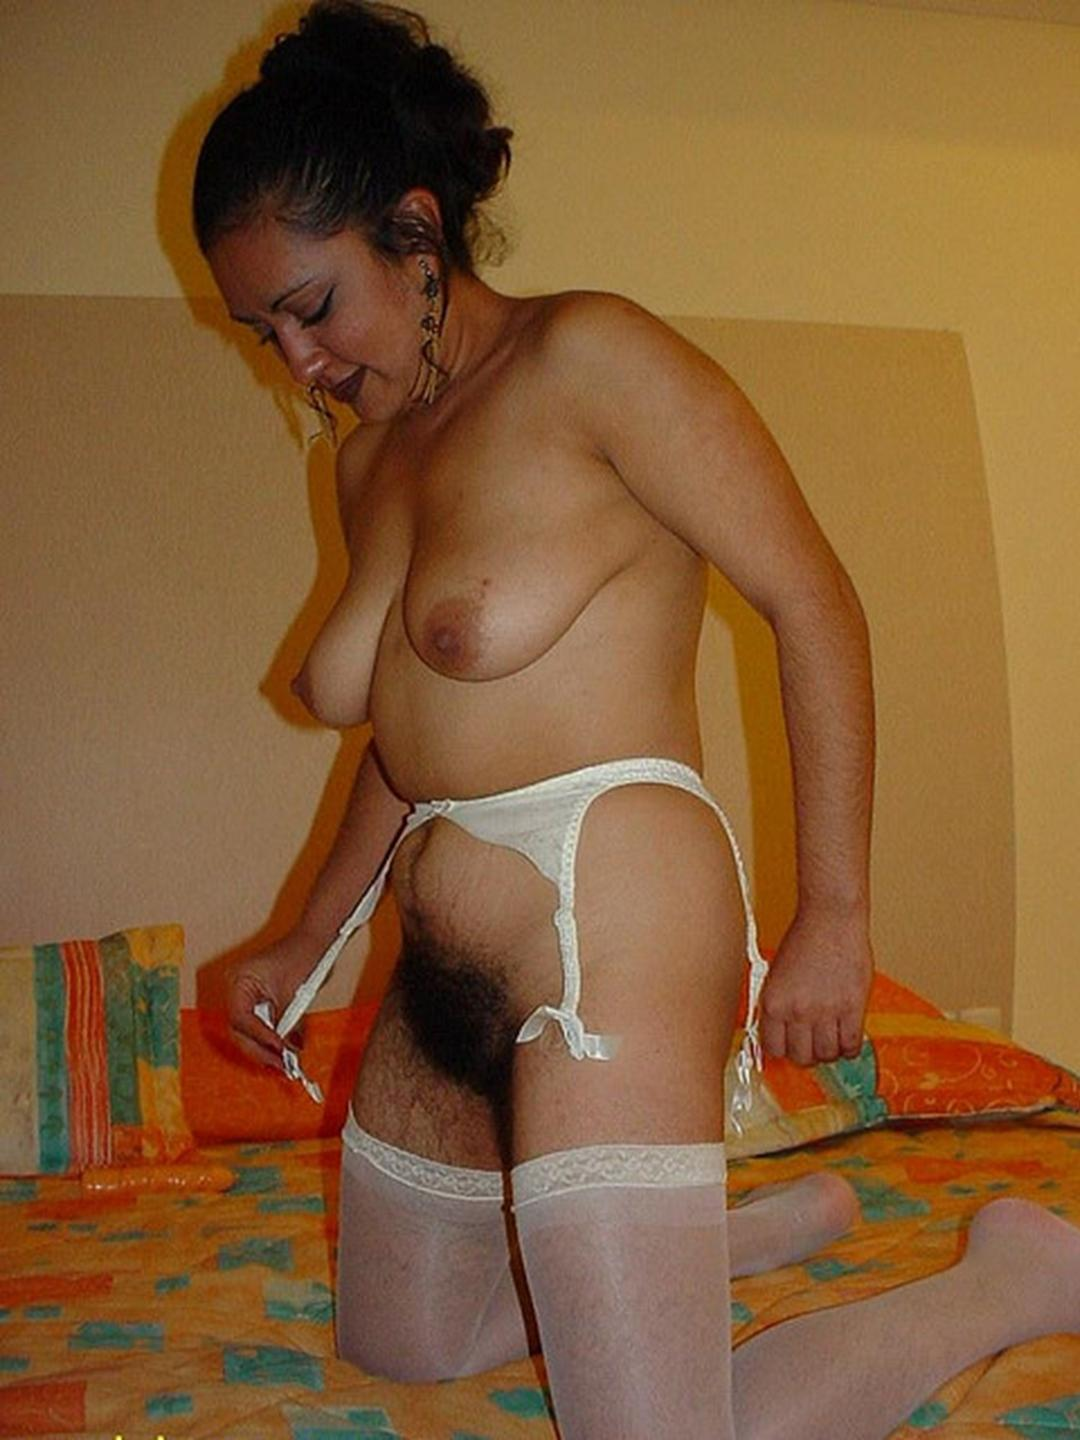 Dominating Women Hairy Pussies-8959